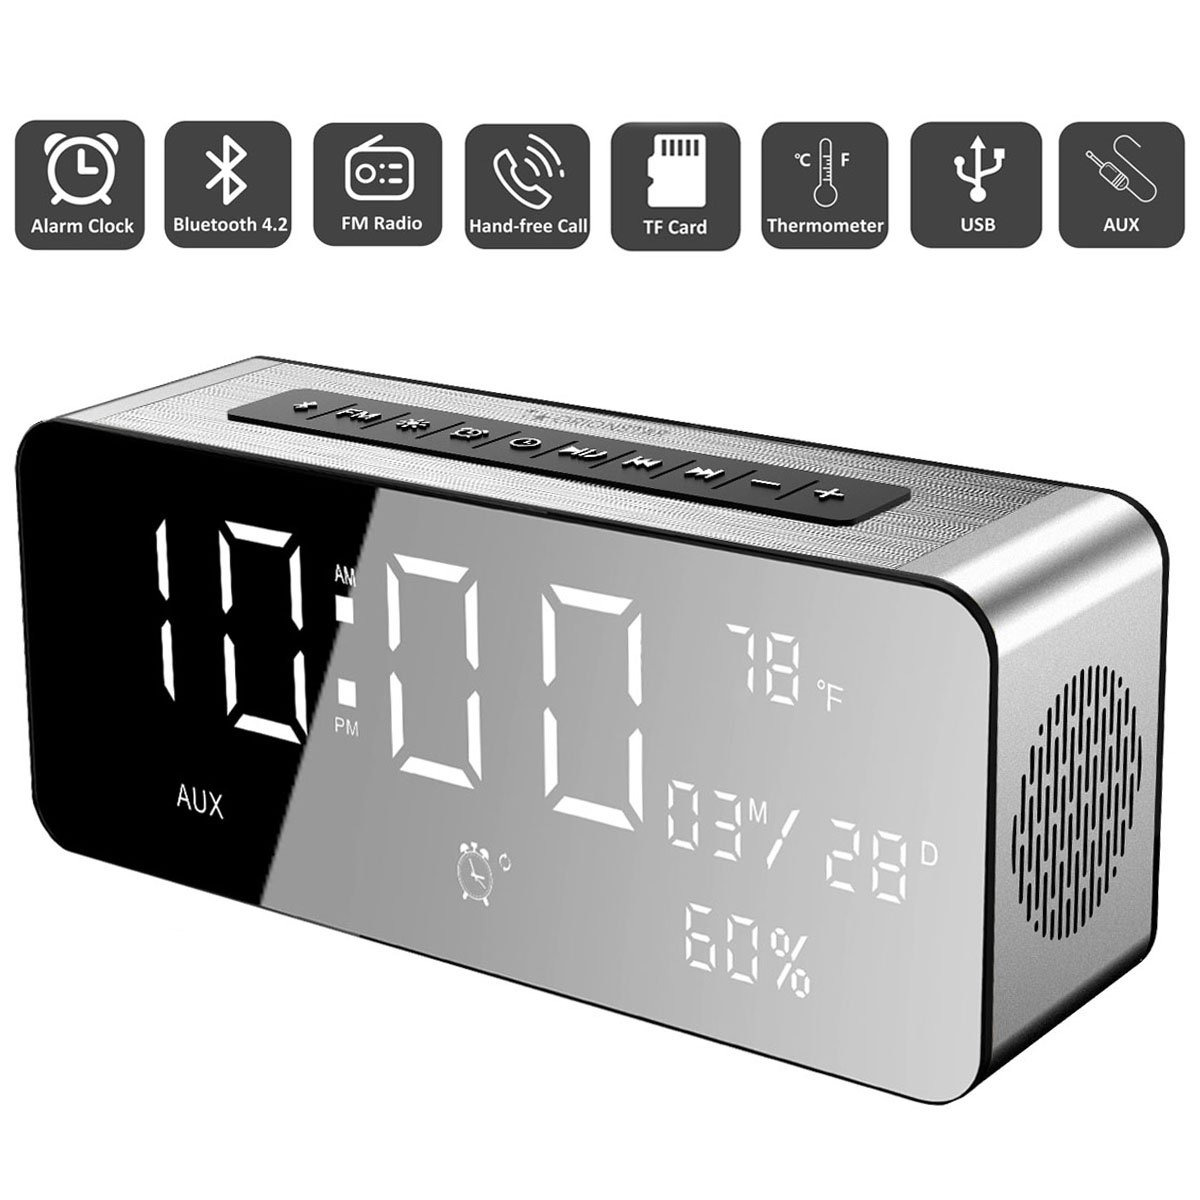 Orionstar Wireless Bluetooth Alarm Clock Radio Speaker with HD Sound & Big Digital Screen Showing Time/Date, Compatible with iPhone/Android/PC4/Aux/MicroSD/TF/USB, for Bedroom Office, Model A10 Silver